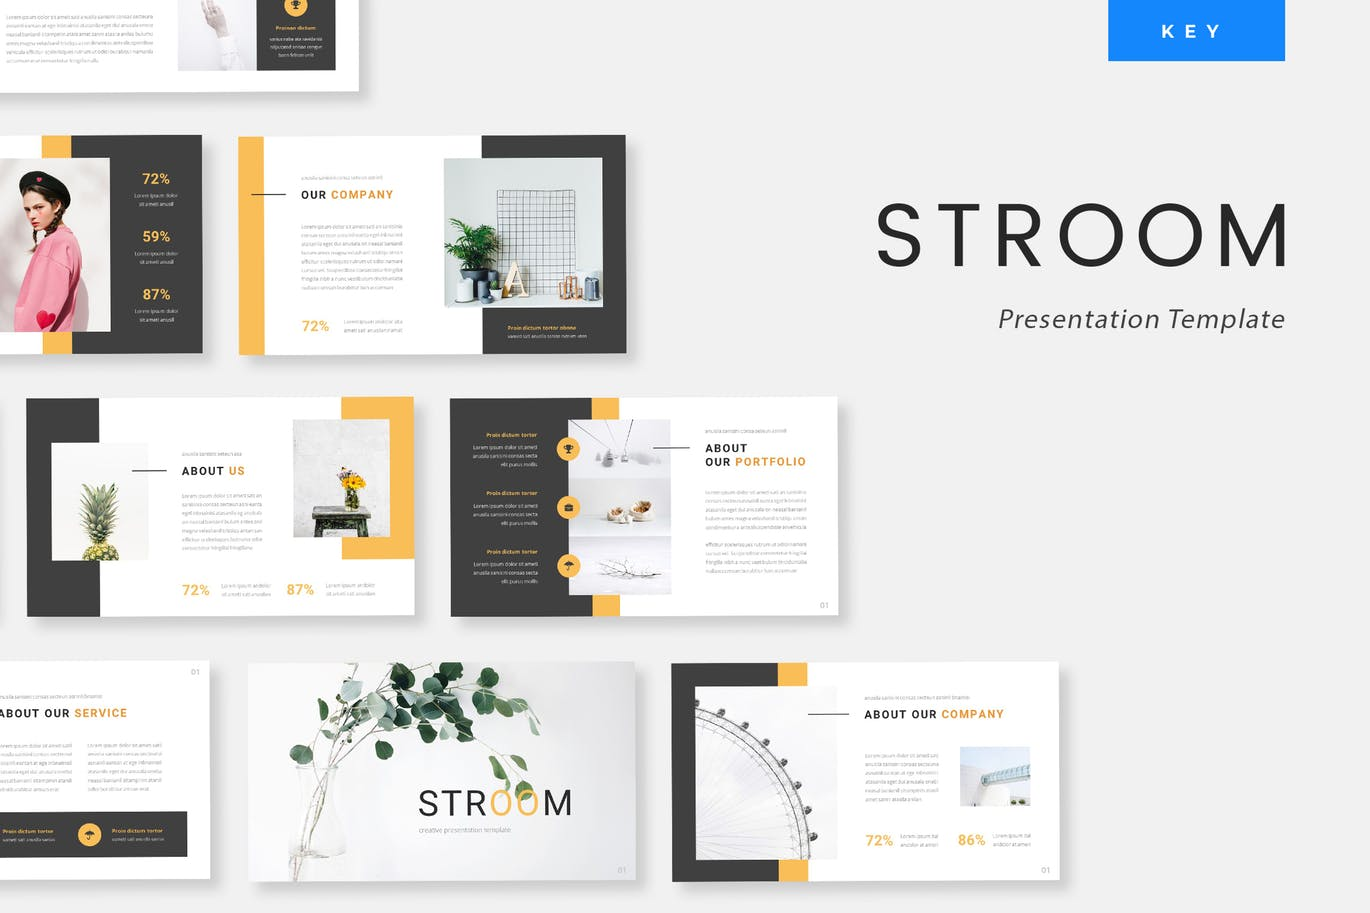 Stroom - Creative Keynote Presentation Template